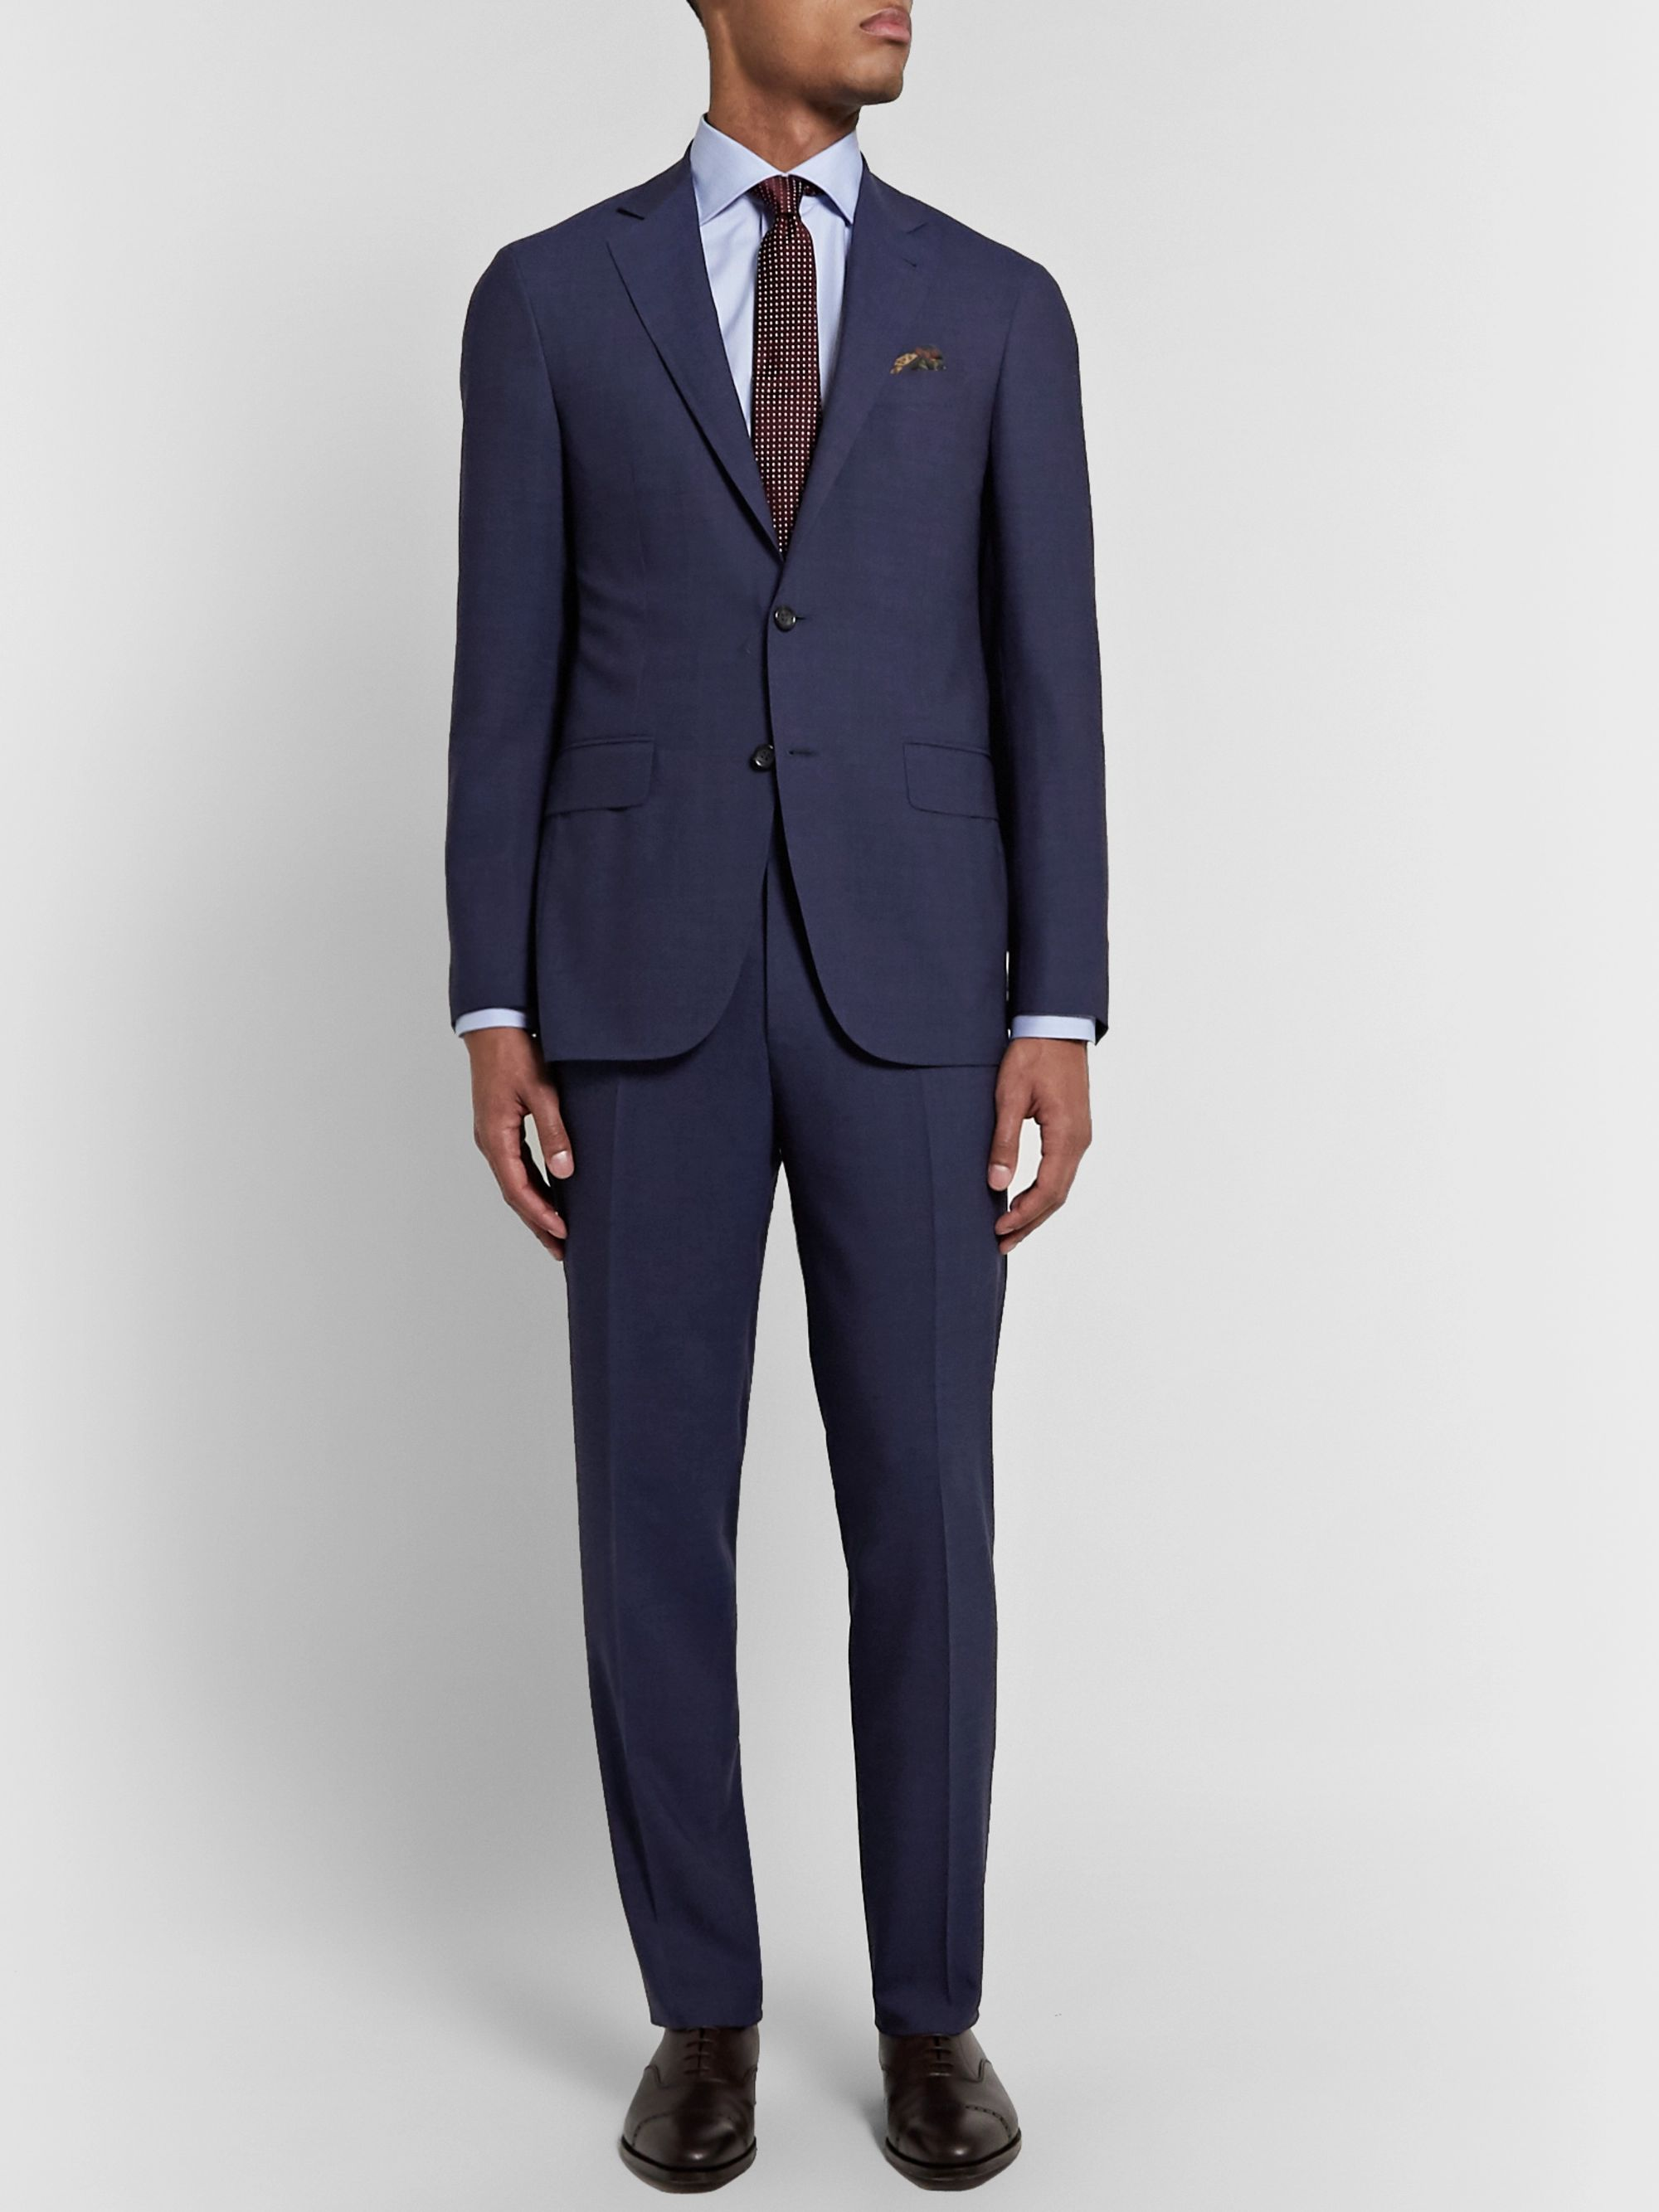 Canali Navy Kei Impeccabile 2.0 Suit Jacket